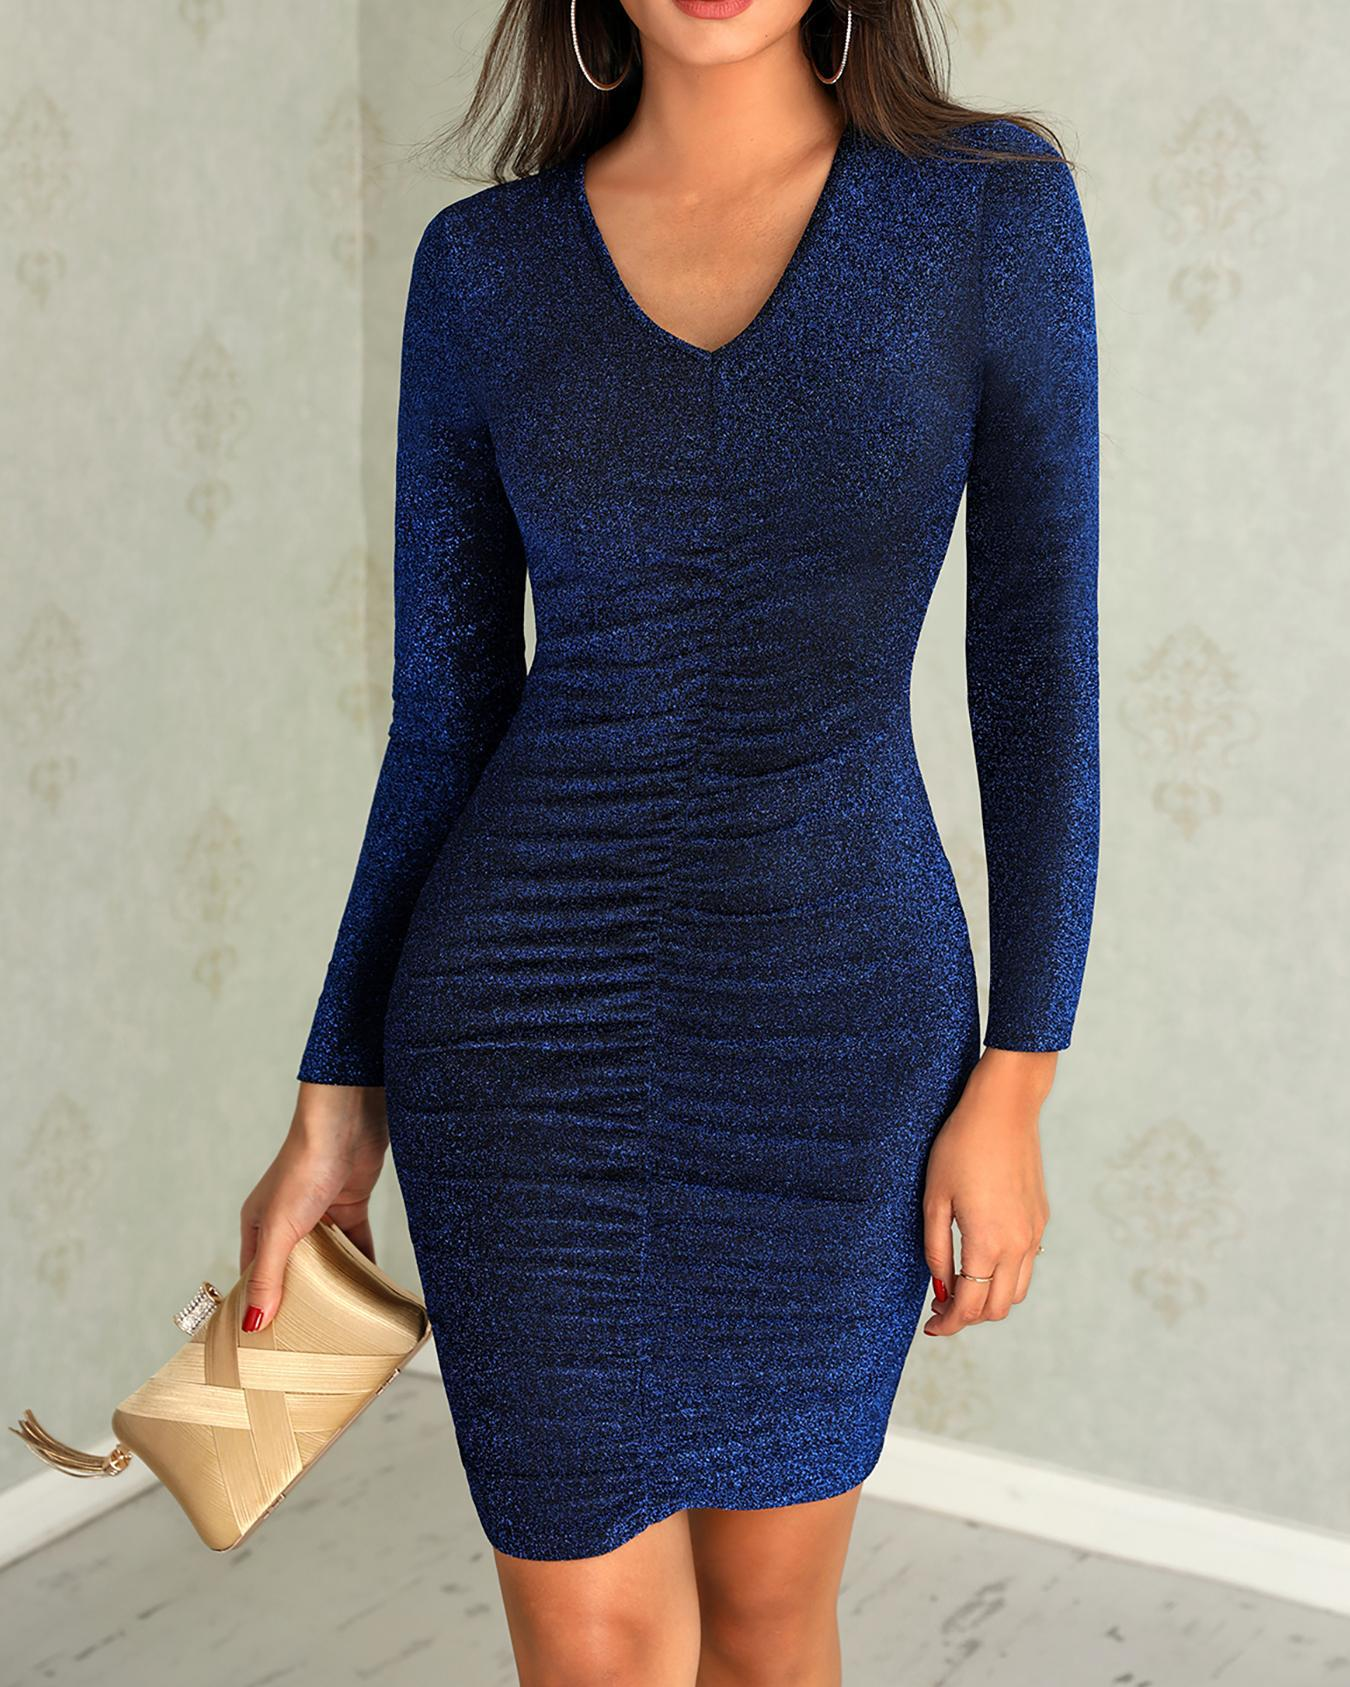 Shiny Scrunched Deep V Bodycon Dress фото